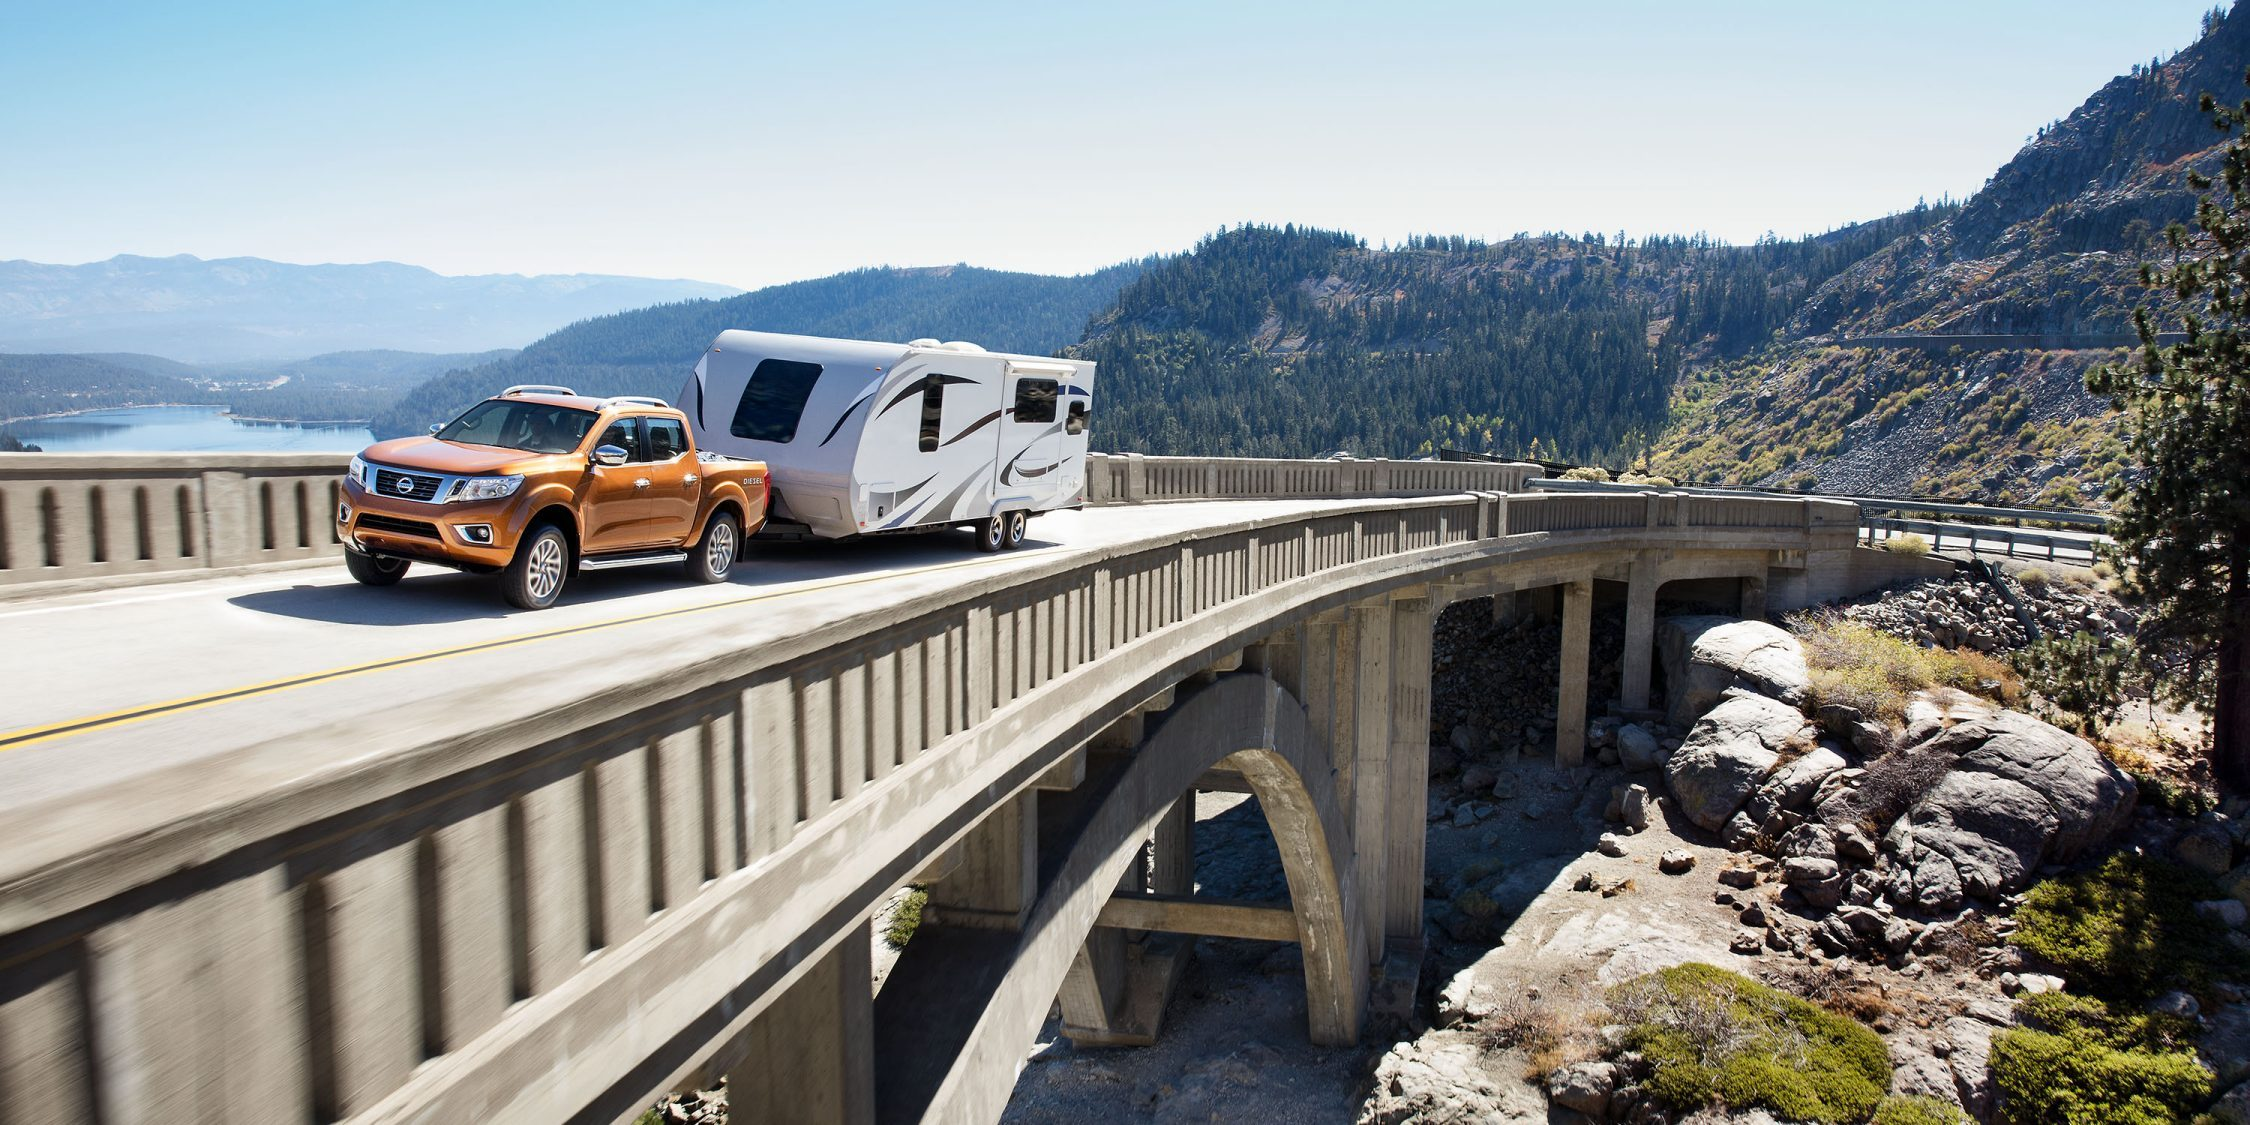 Nissan Navara towing trailer over scenic bridge